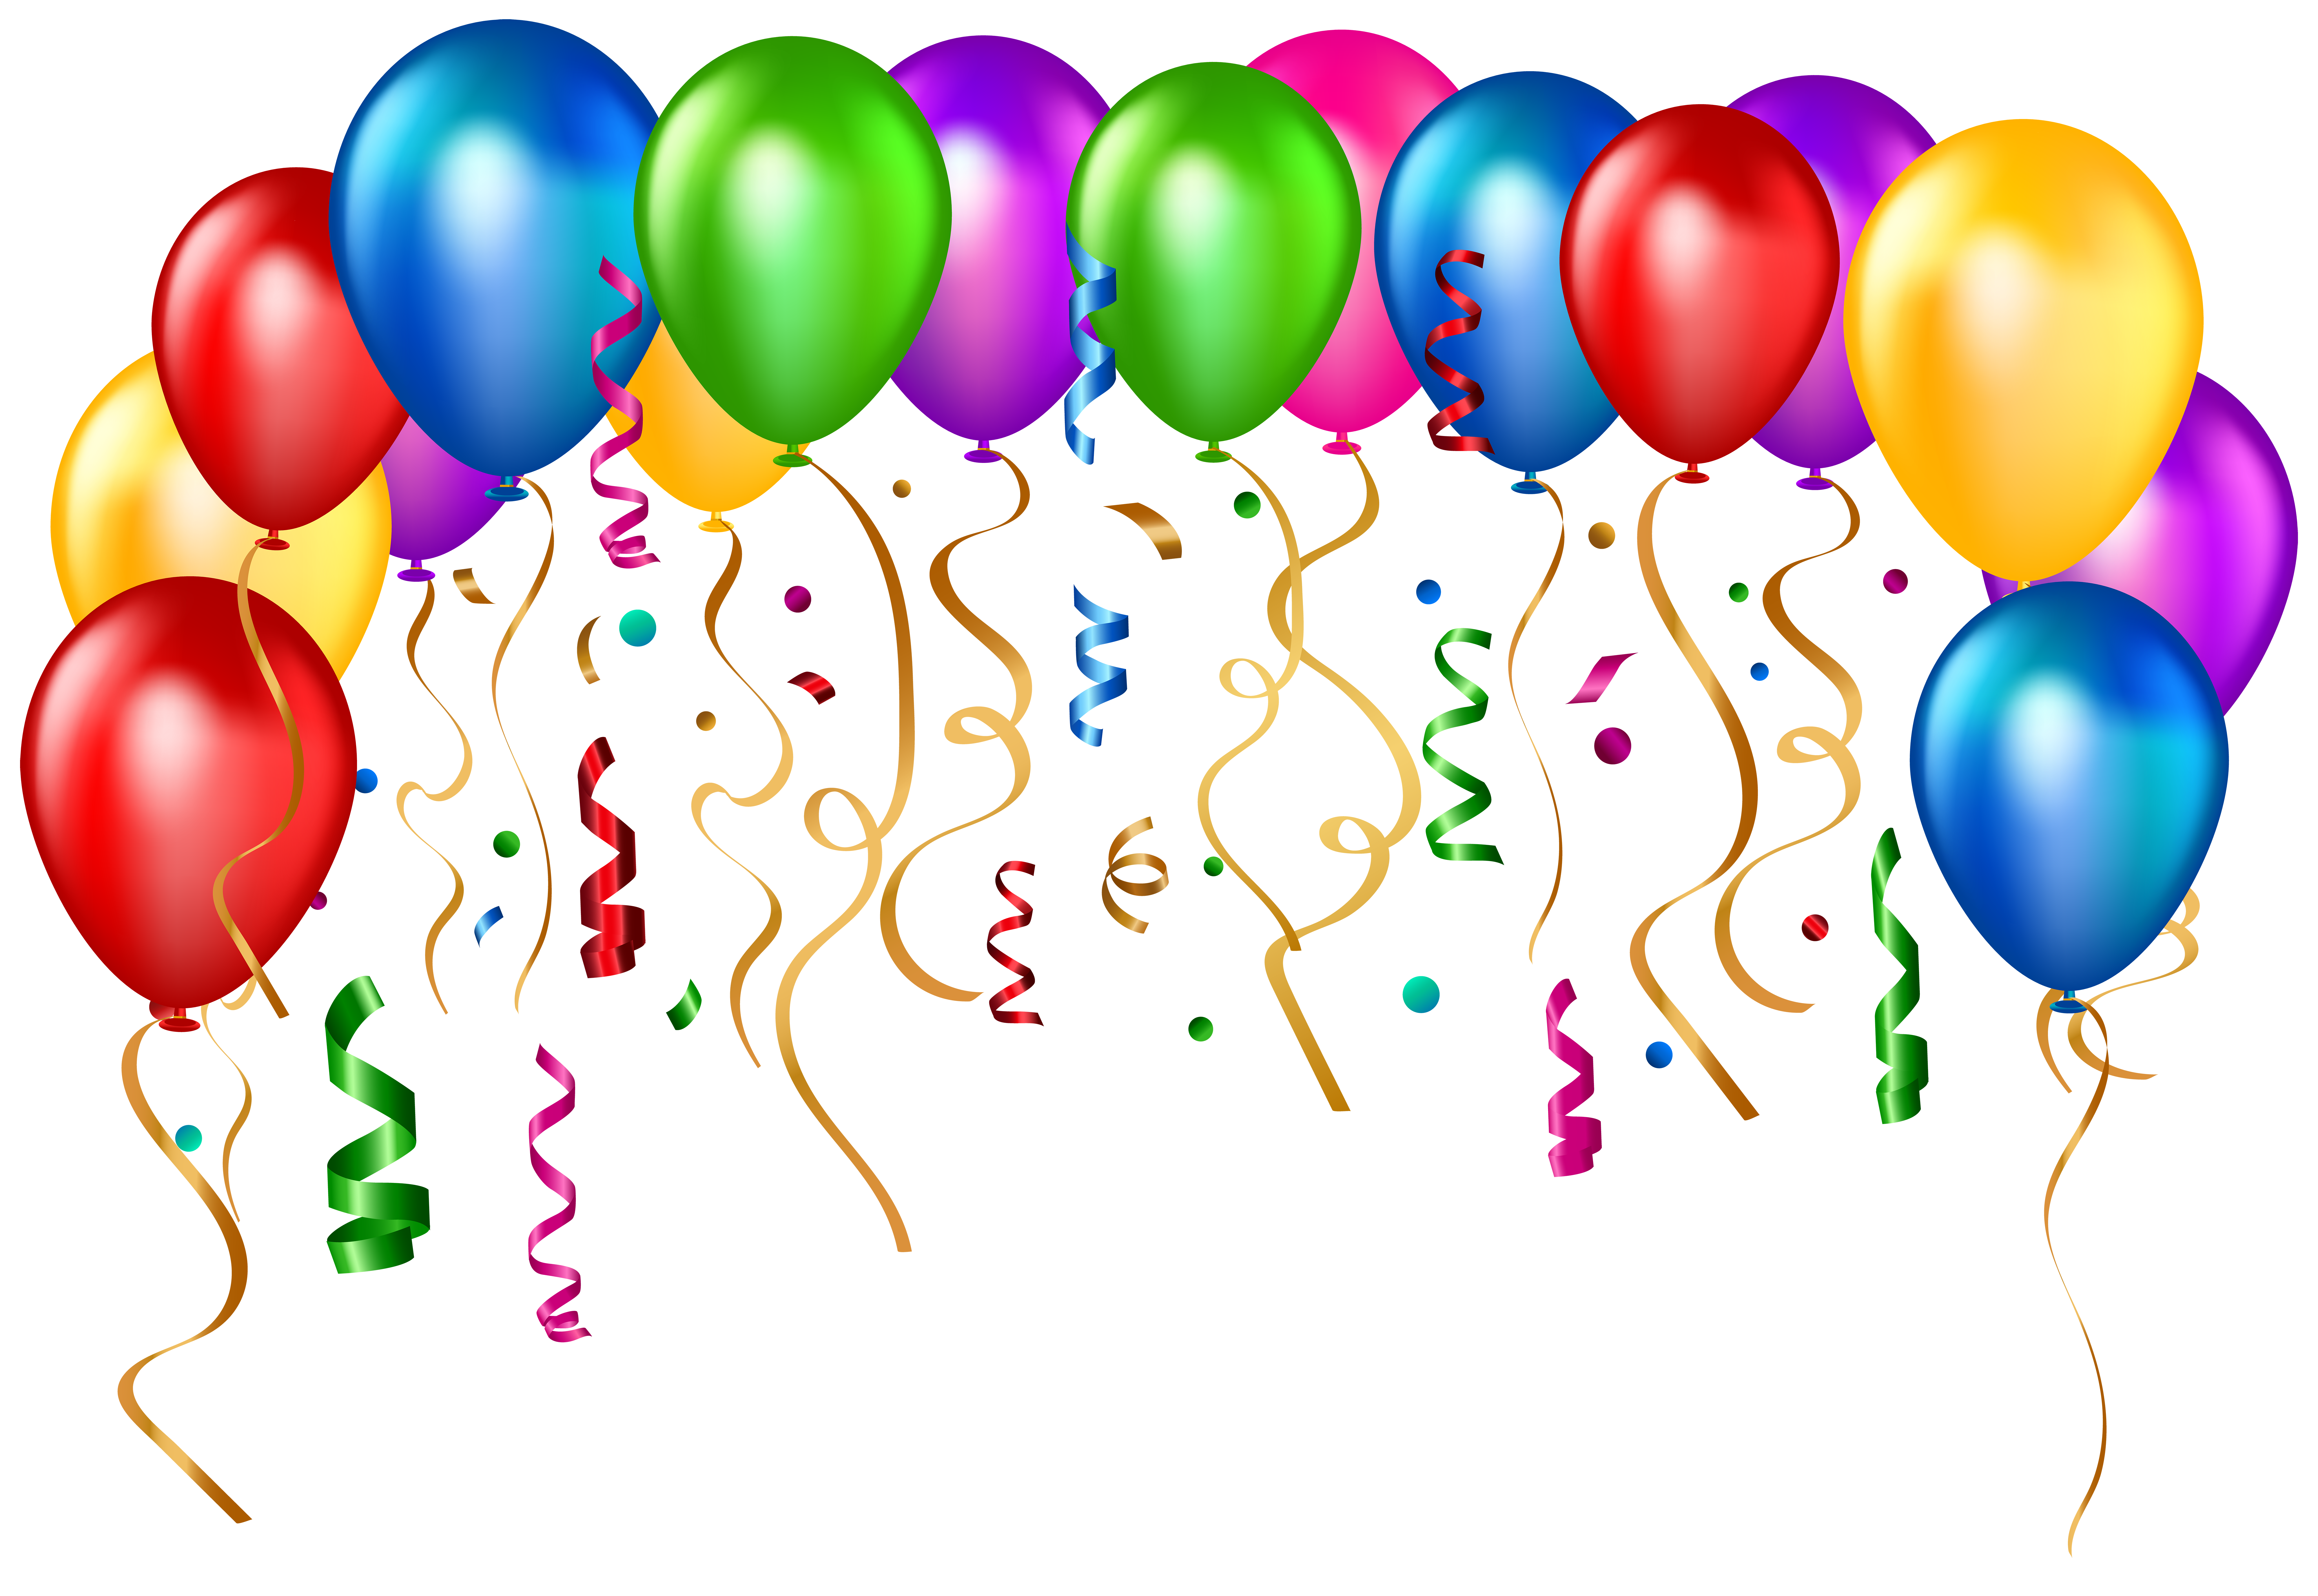 Birthday Party Balloons Transparent PNG Clip Art Image.